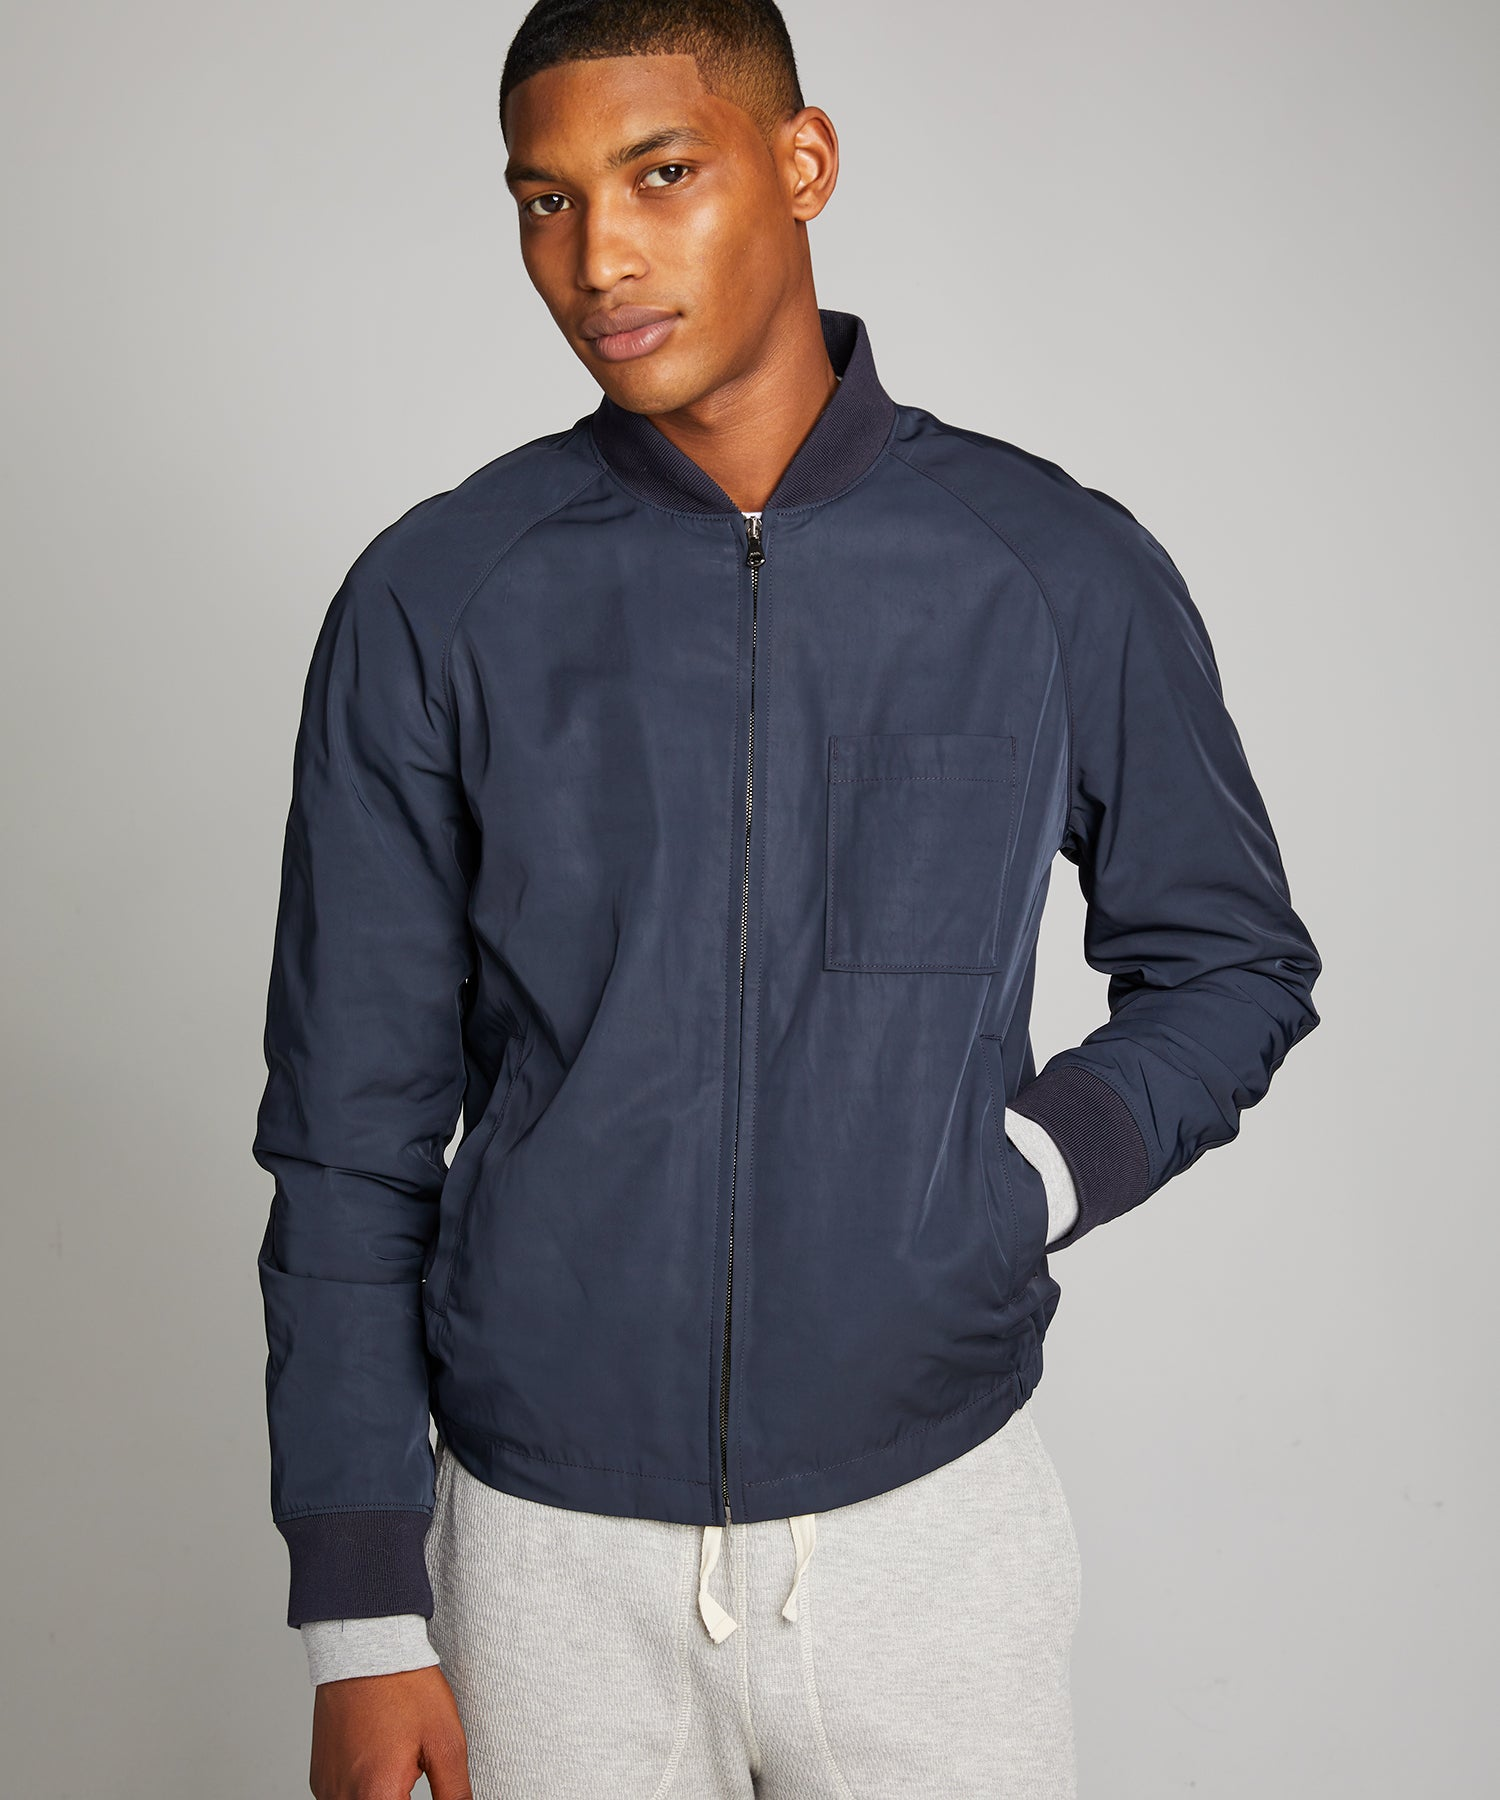 Jet Bomber Jacket in Navy